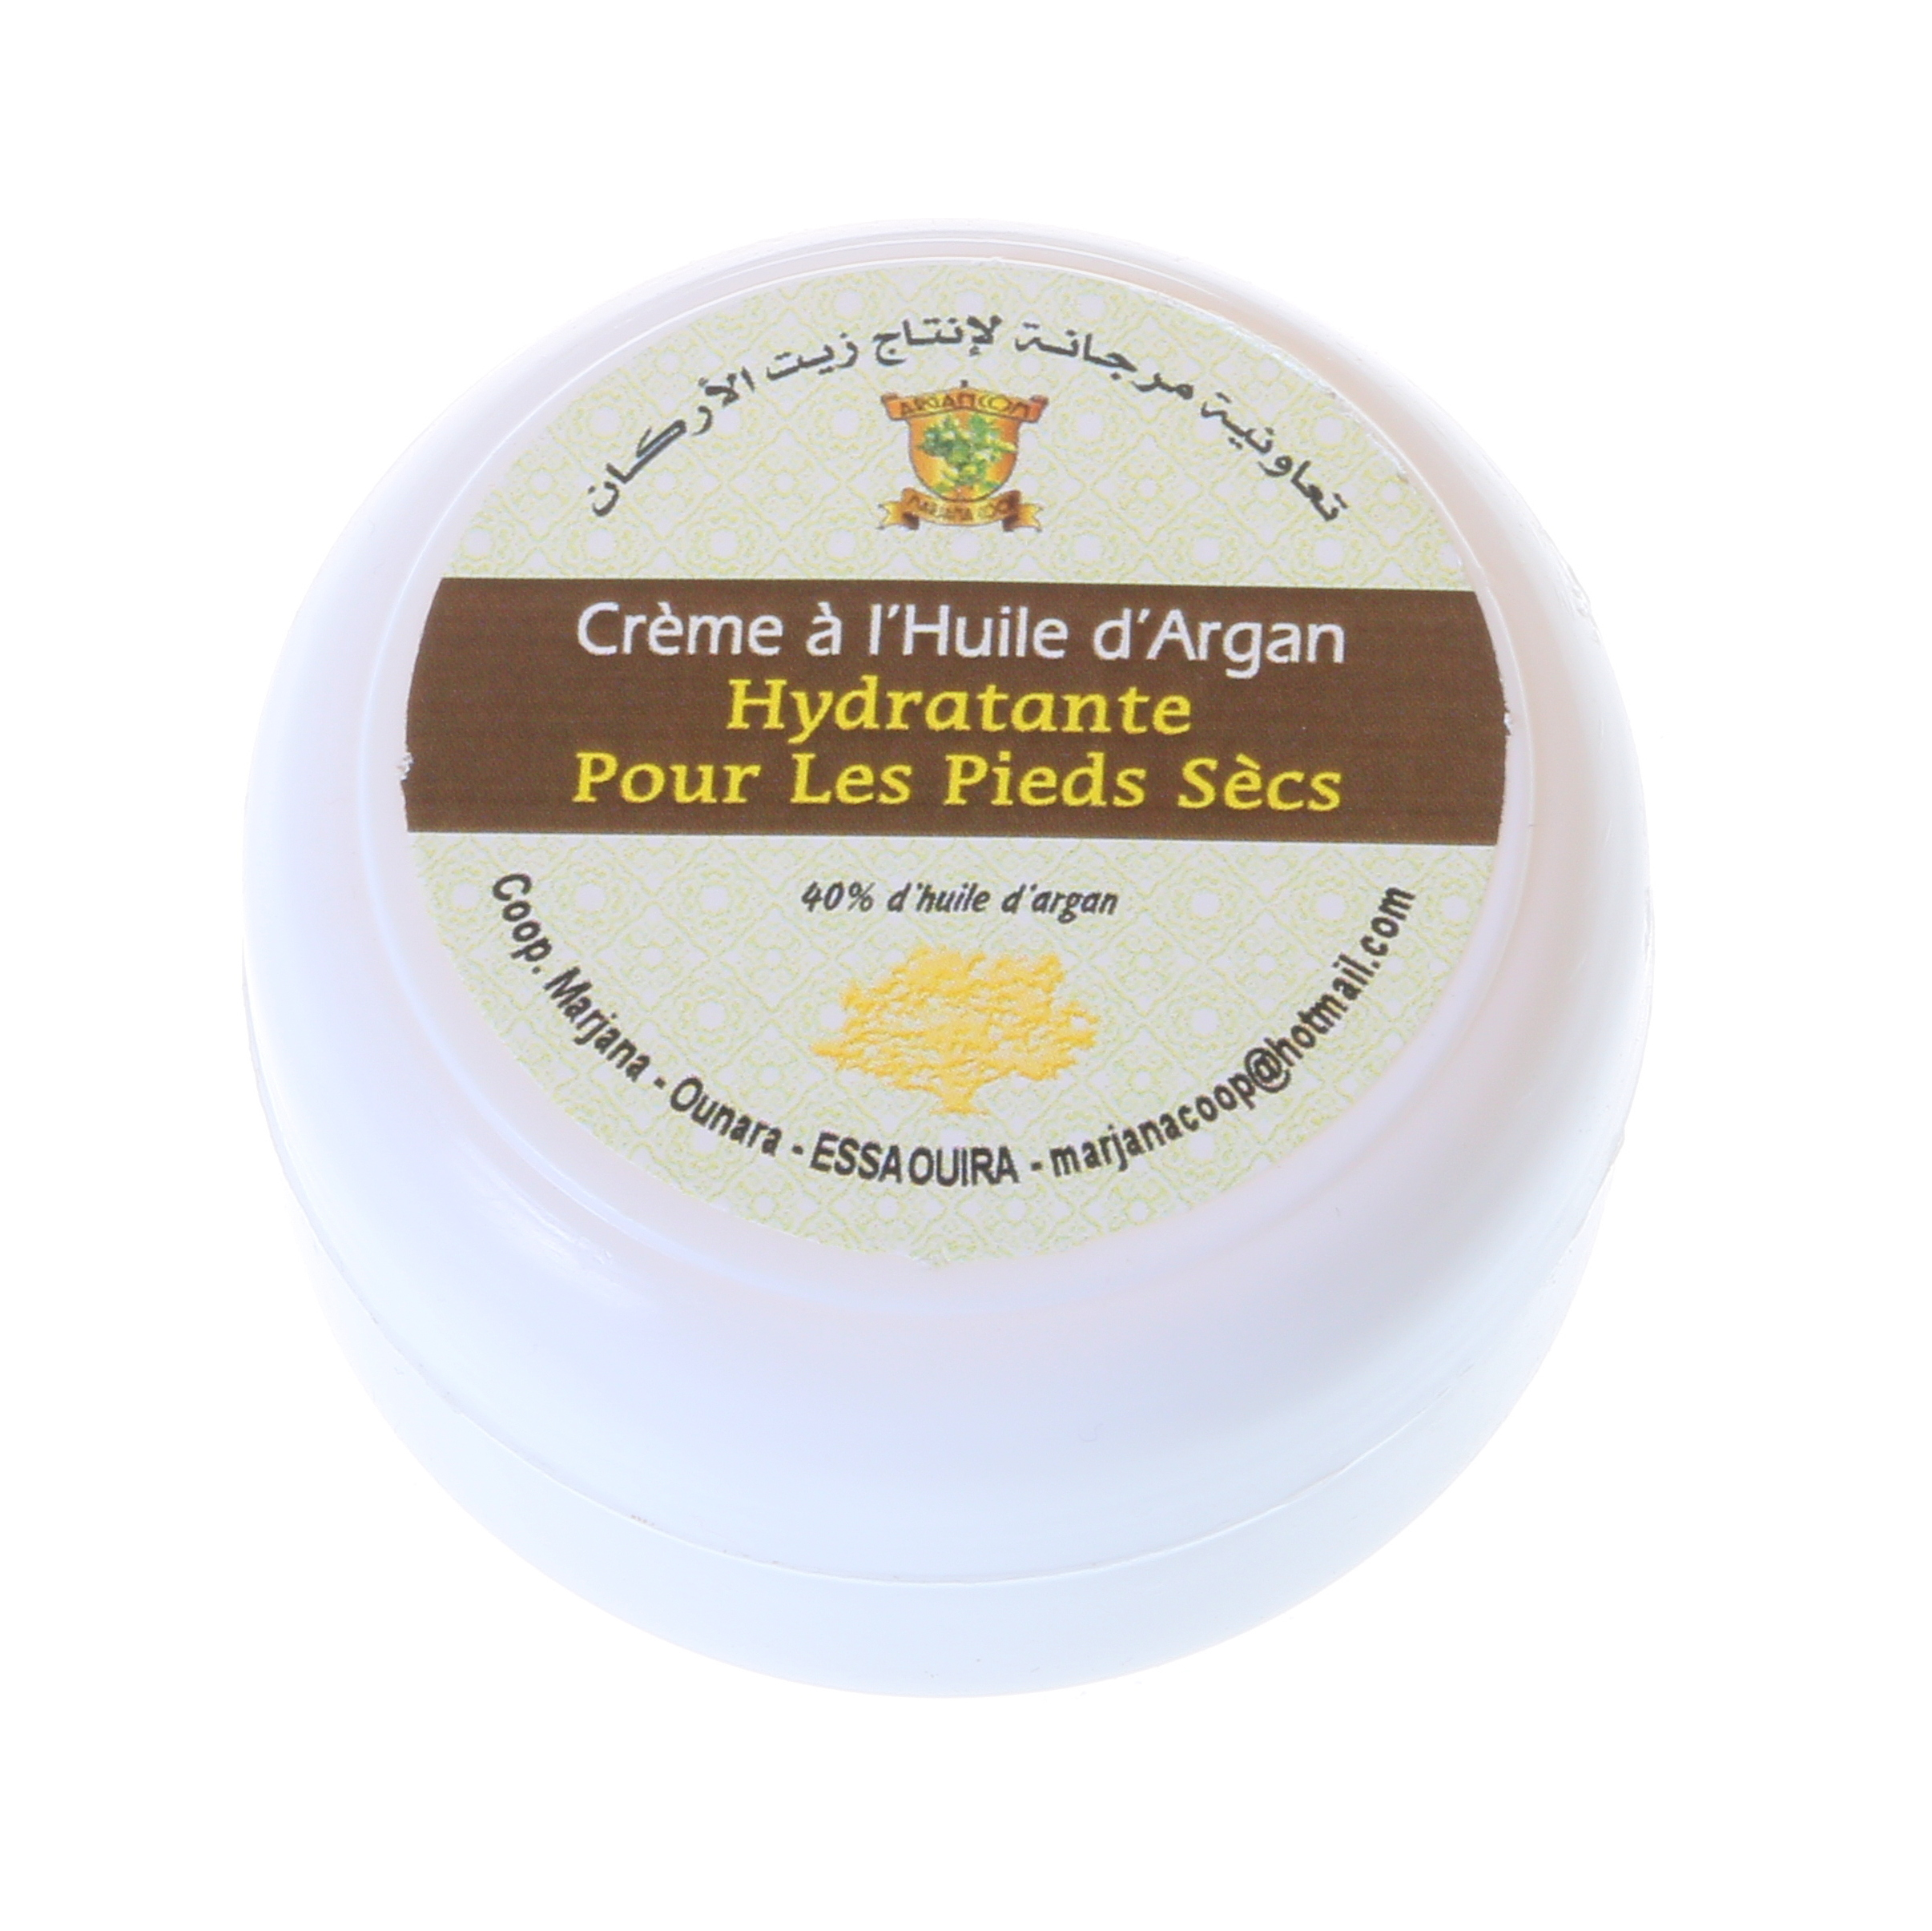 Exclusive foot creme with argan oil - directly from women's cooperative in Morocco